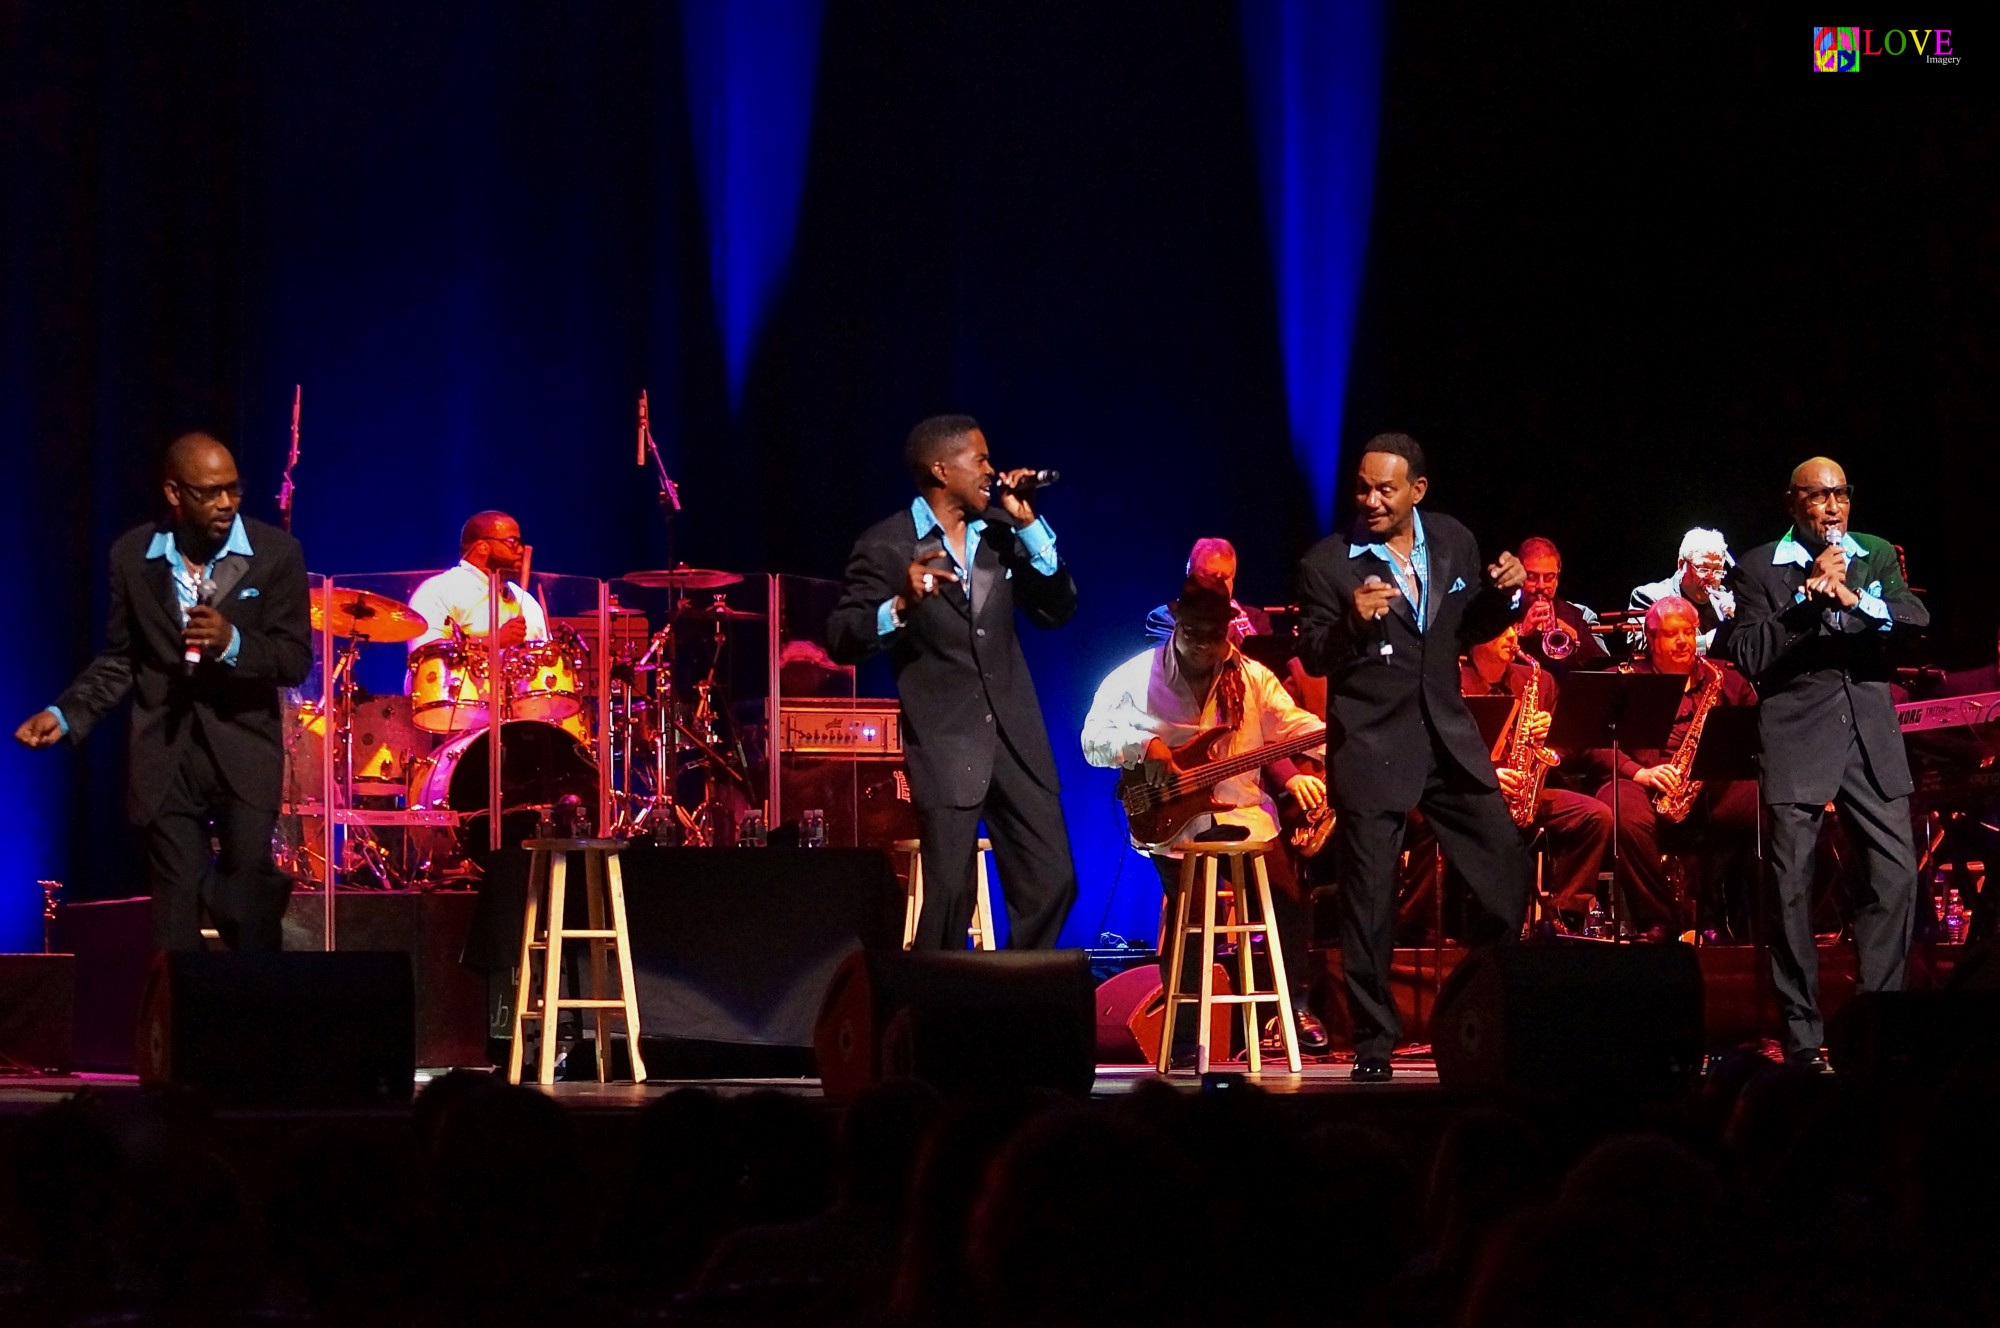 The Temptations and The Four Tops LIVE! at NJPAC